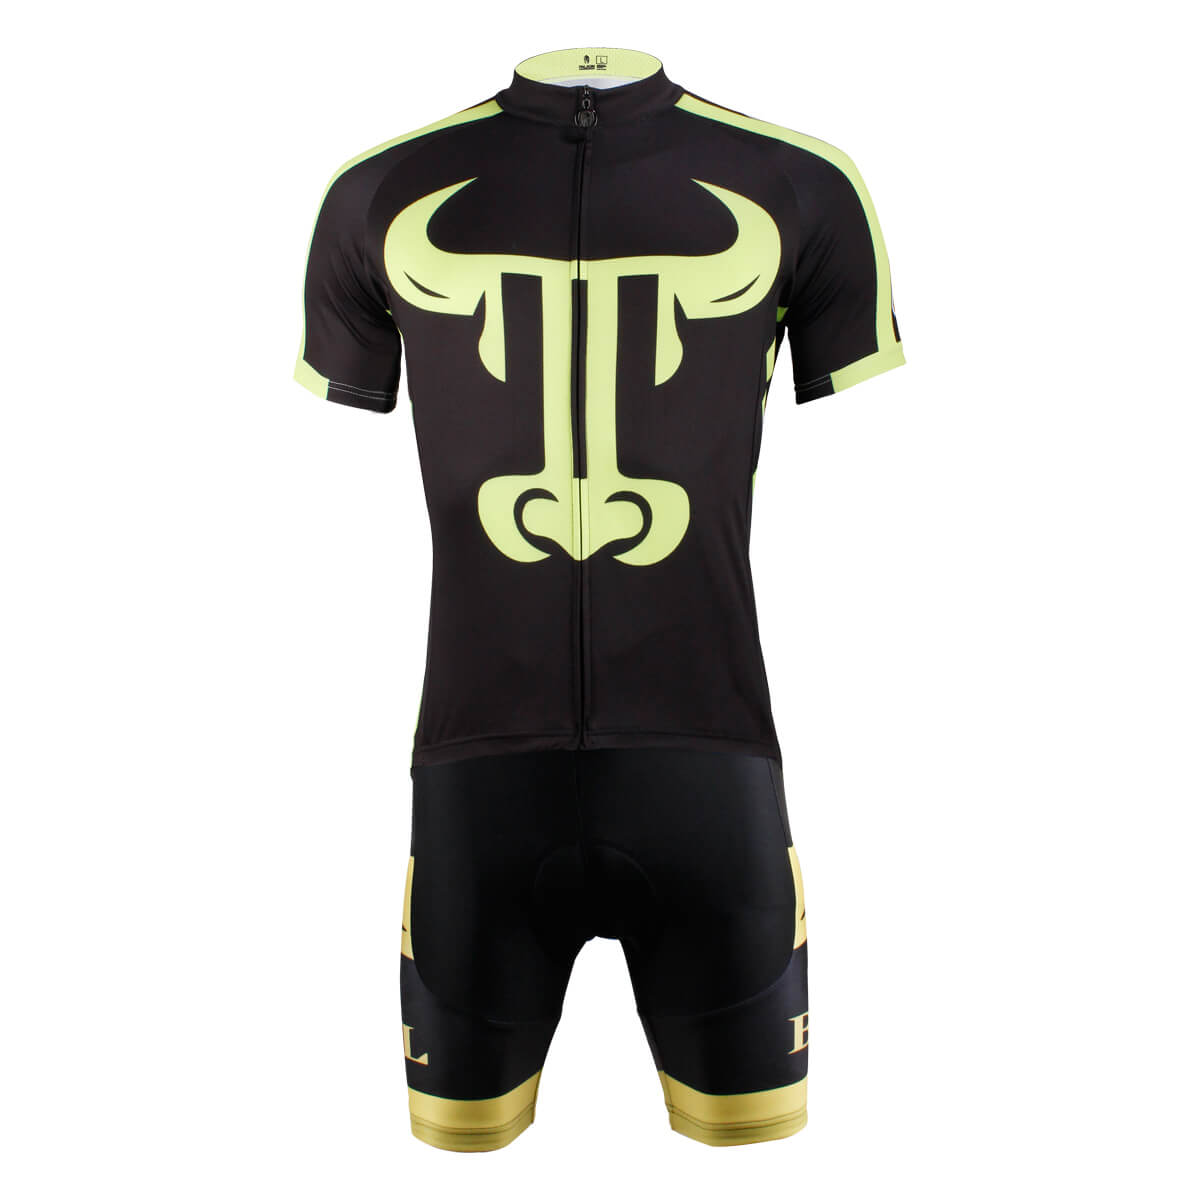 Bull Desigh Black Cycling Suits For Men's With Jersey and Bib Padded Shorts